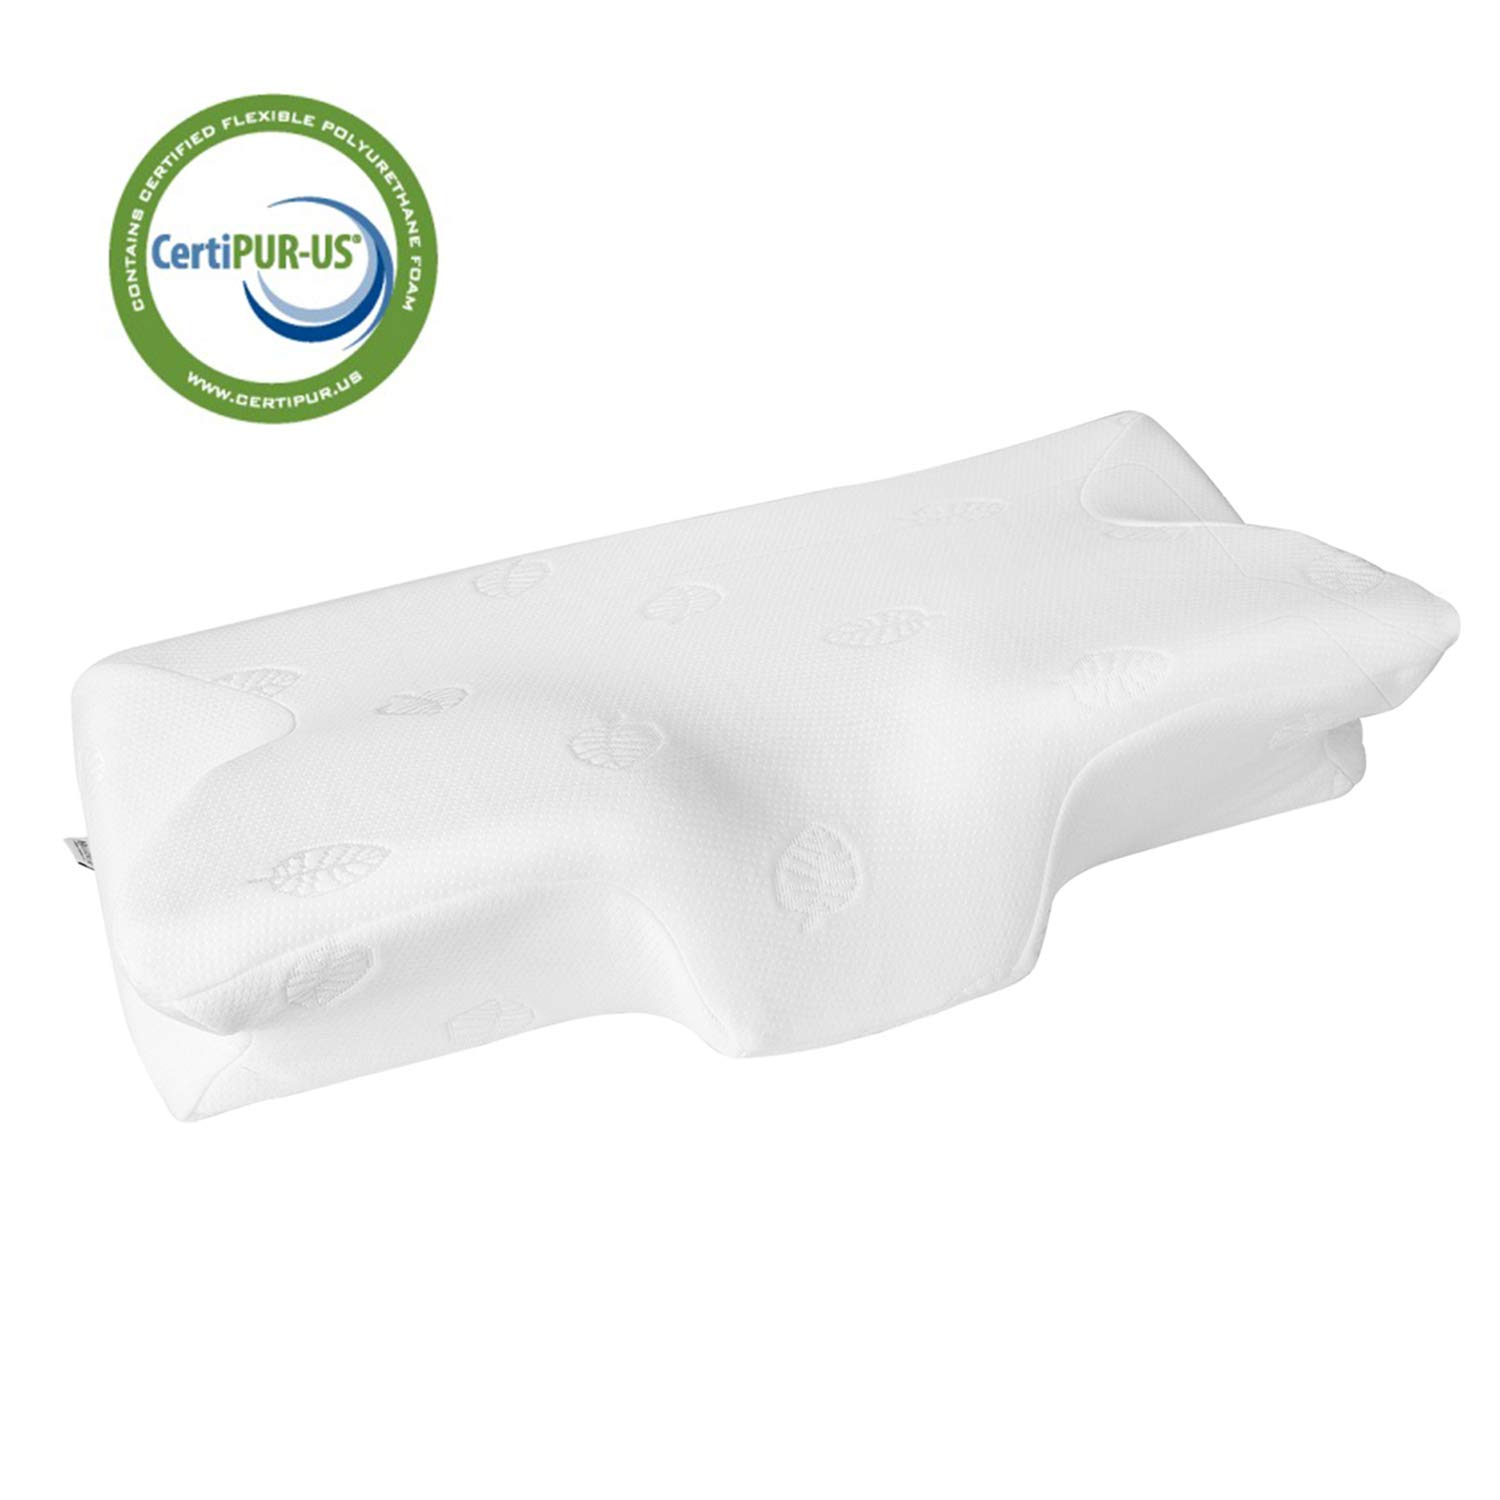 MARNUR 23.5×14.5×5.5 in Cervical Pillow Contour Memory Foam Orthopedic Pillow for Neck Pain Sleeping for Side Sleeper Back Sleeper Stomach Sleeper+White Pillowcase(1 PCS) sleep pillows Sleep Pillows Reviews and Buying Guide-Good Sleep with Good Pillows 61ZT2j7 2B2jL